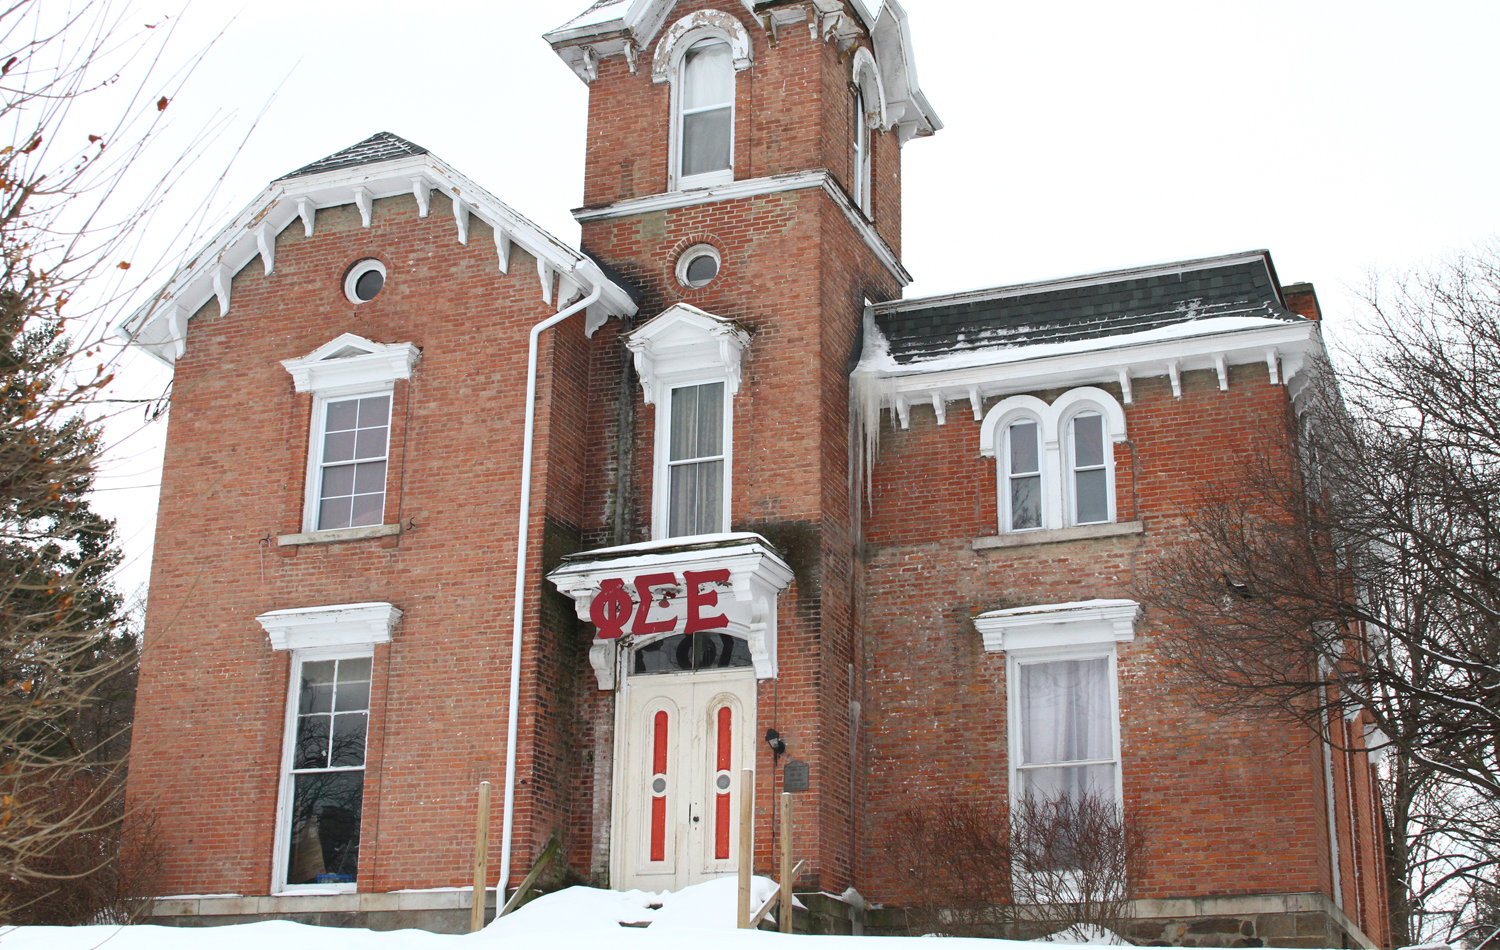 FROM THE PUBLISHER: Deadly Frat Has No Place in Geneseo